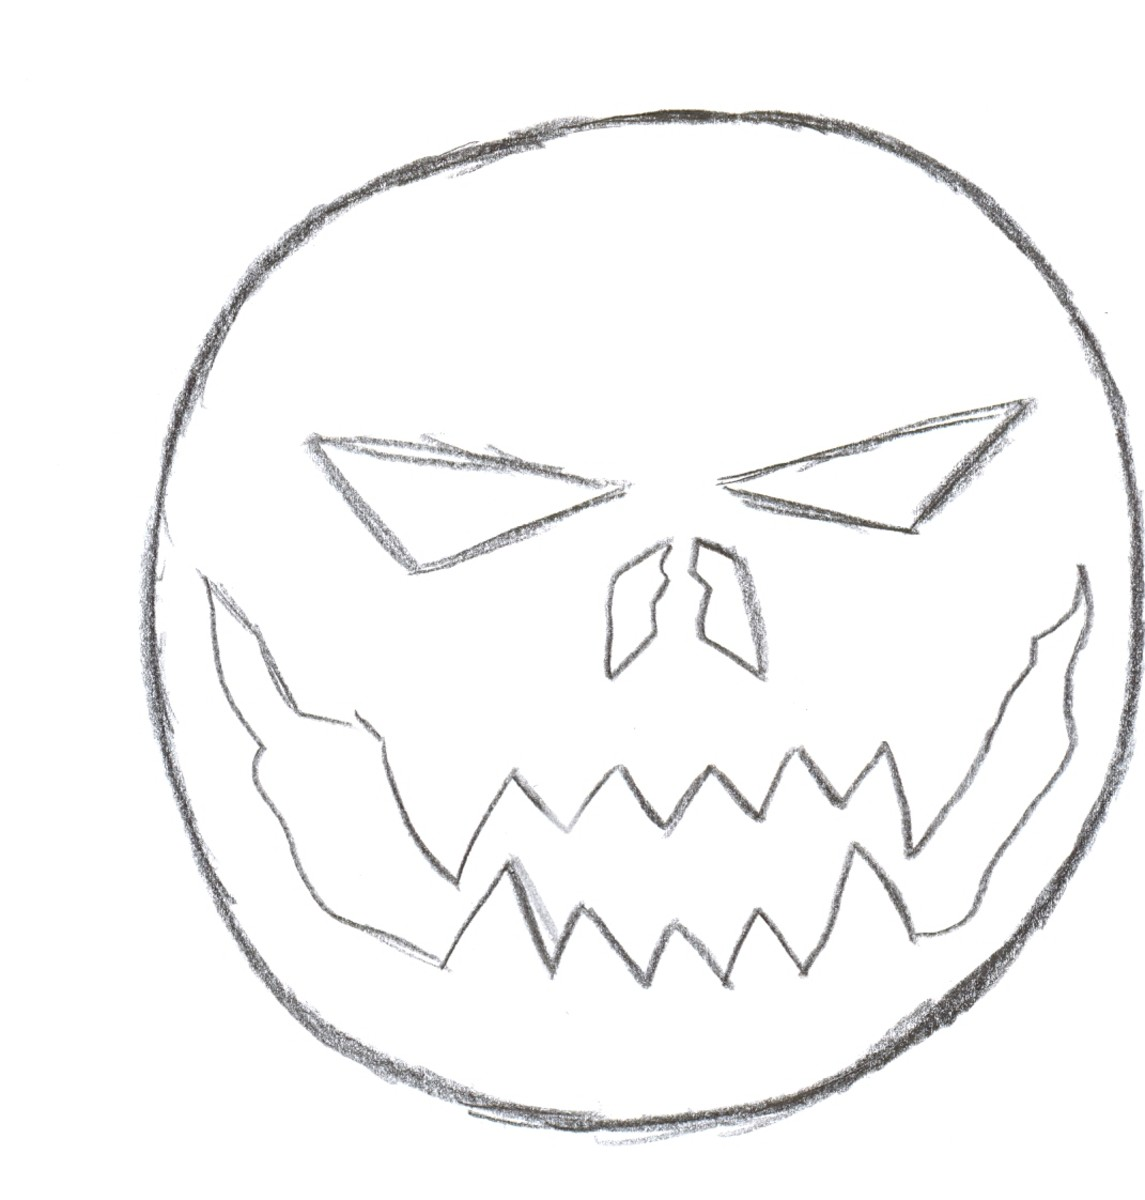 Draw Halloween pumpkins - Drawing the pumpkins face.